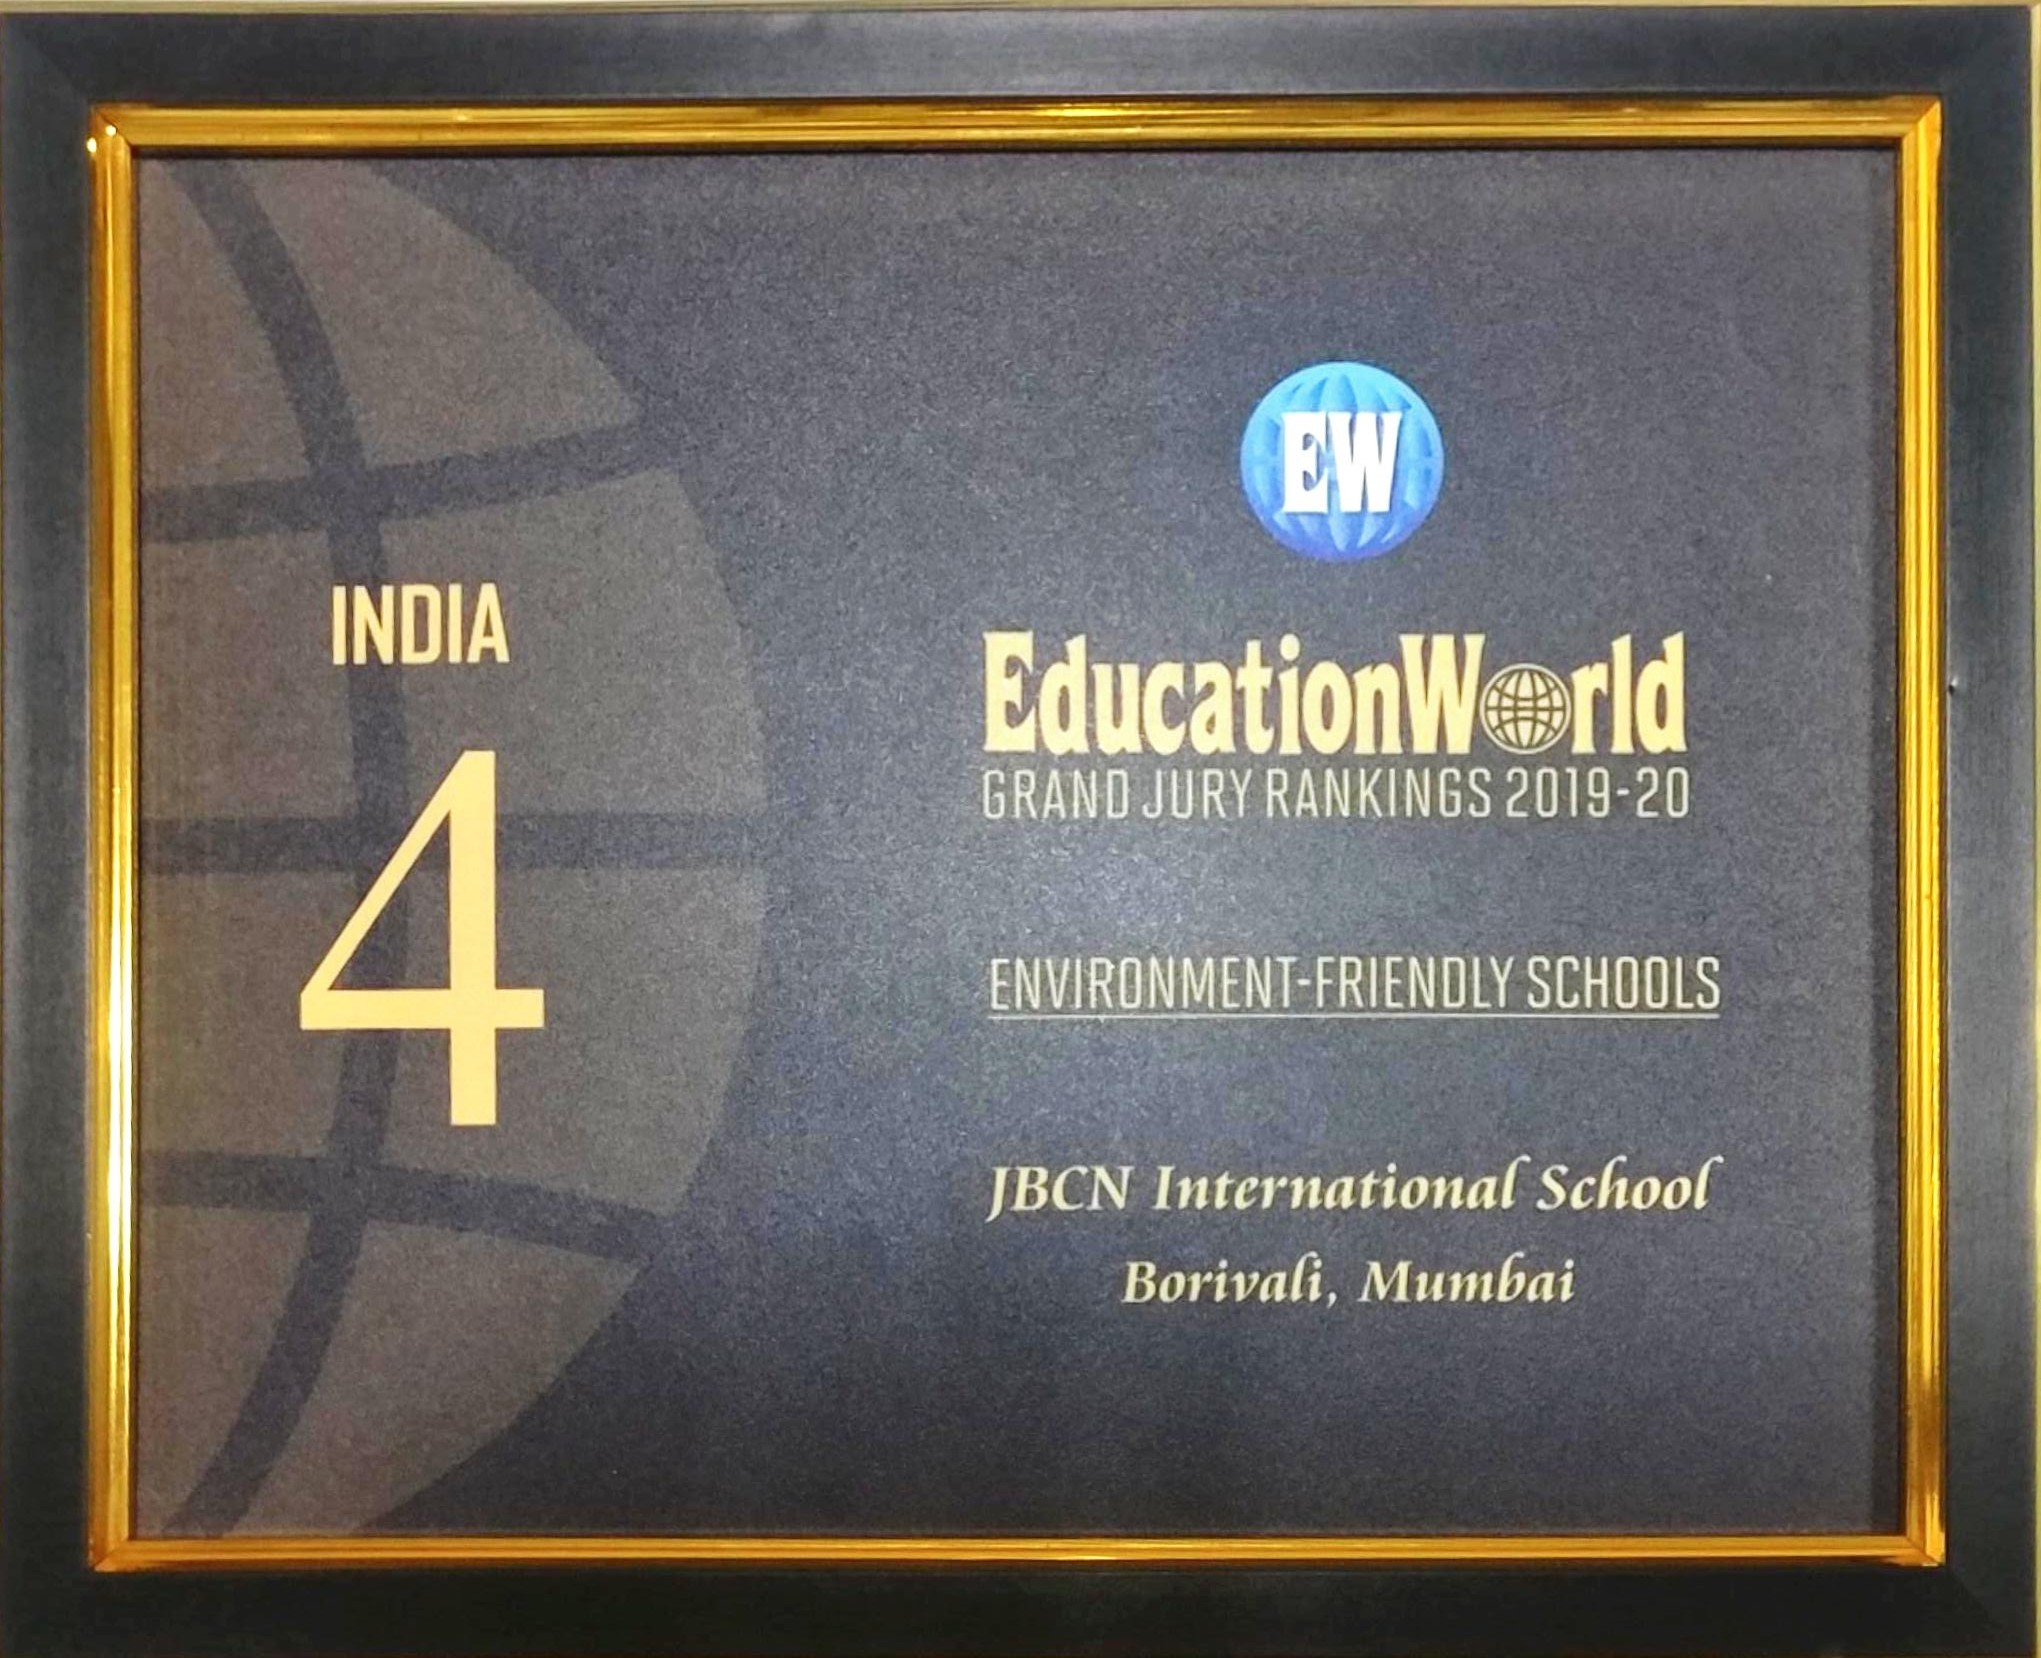 Education World Grand Jury Awards 19